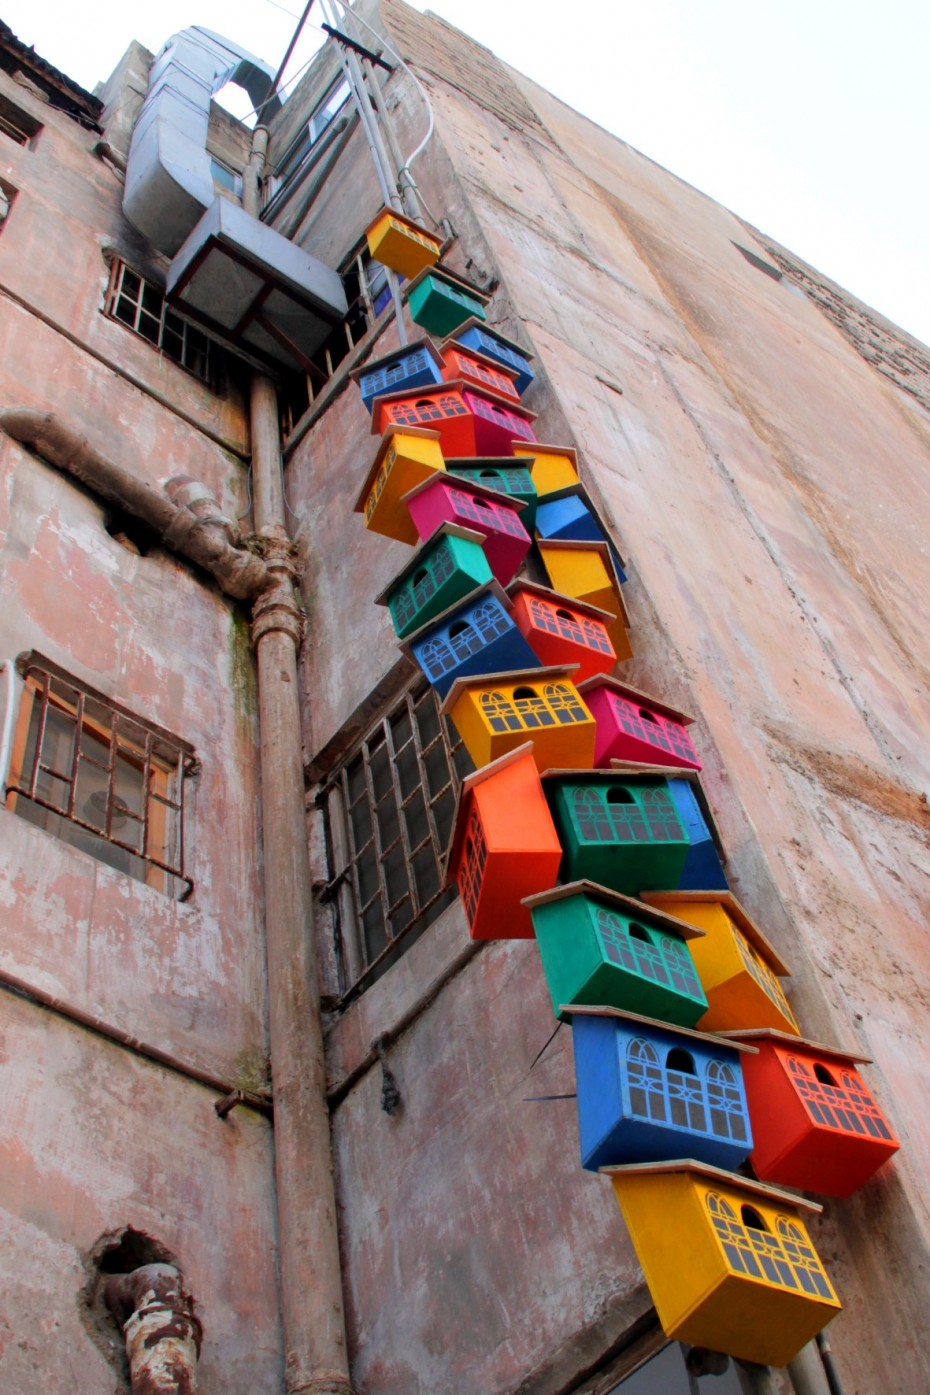 Upcycled birdhouses on a mural in Beirut